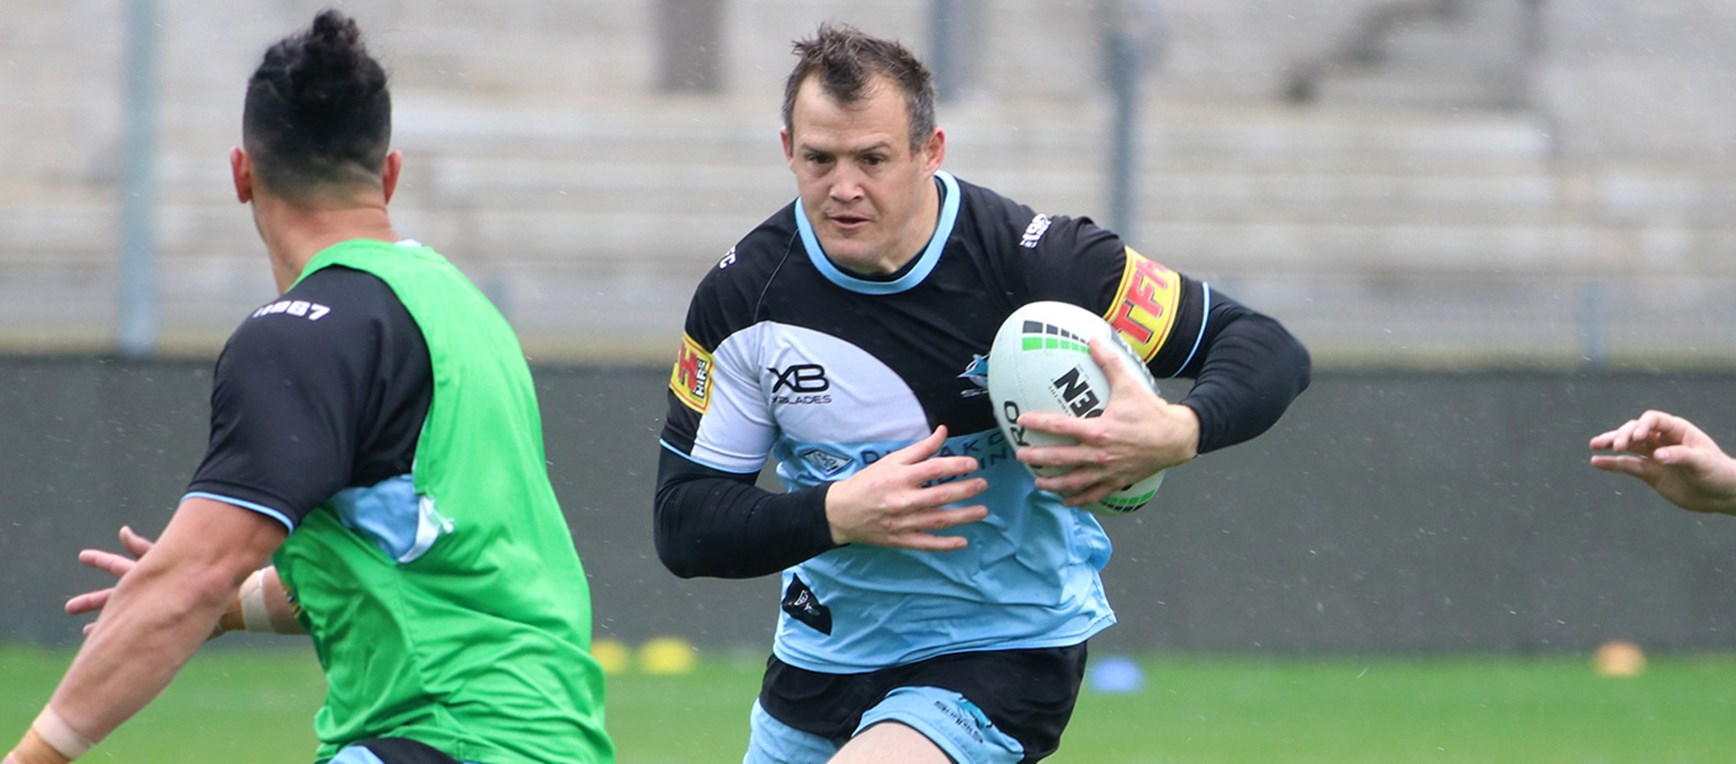 Wet weather footy as Sharks prepare for the Raiders